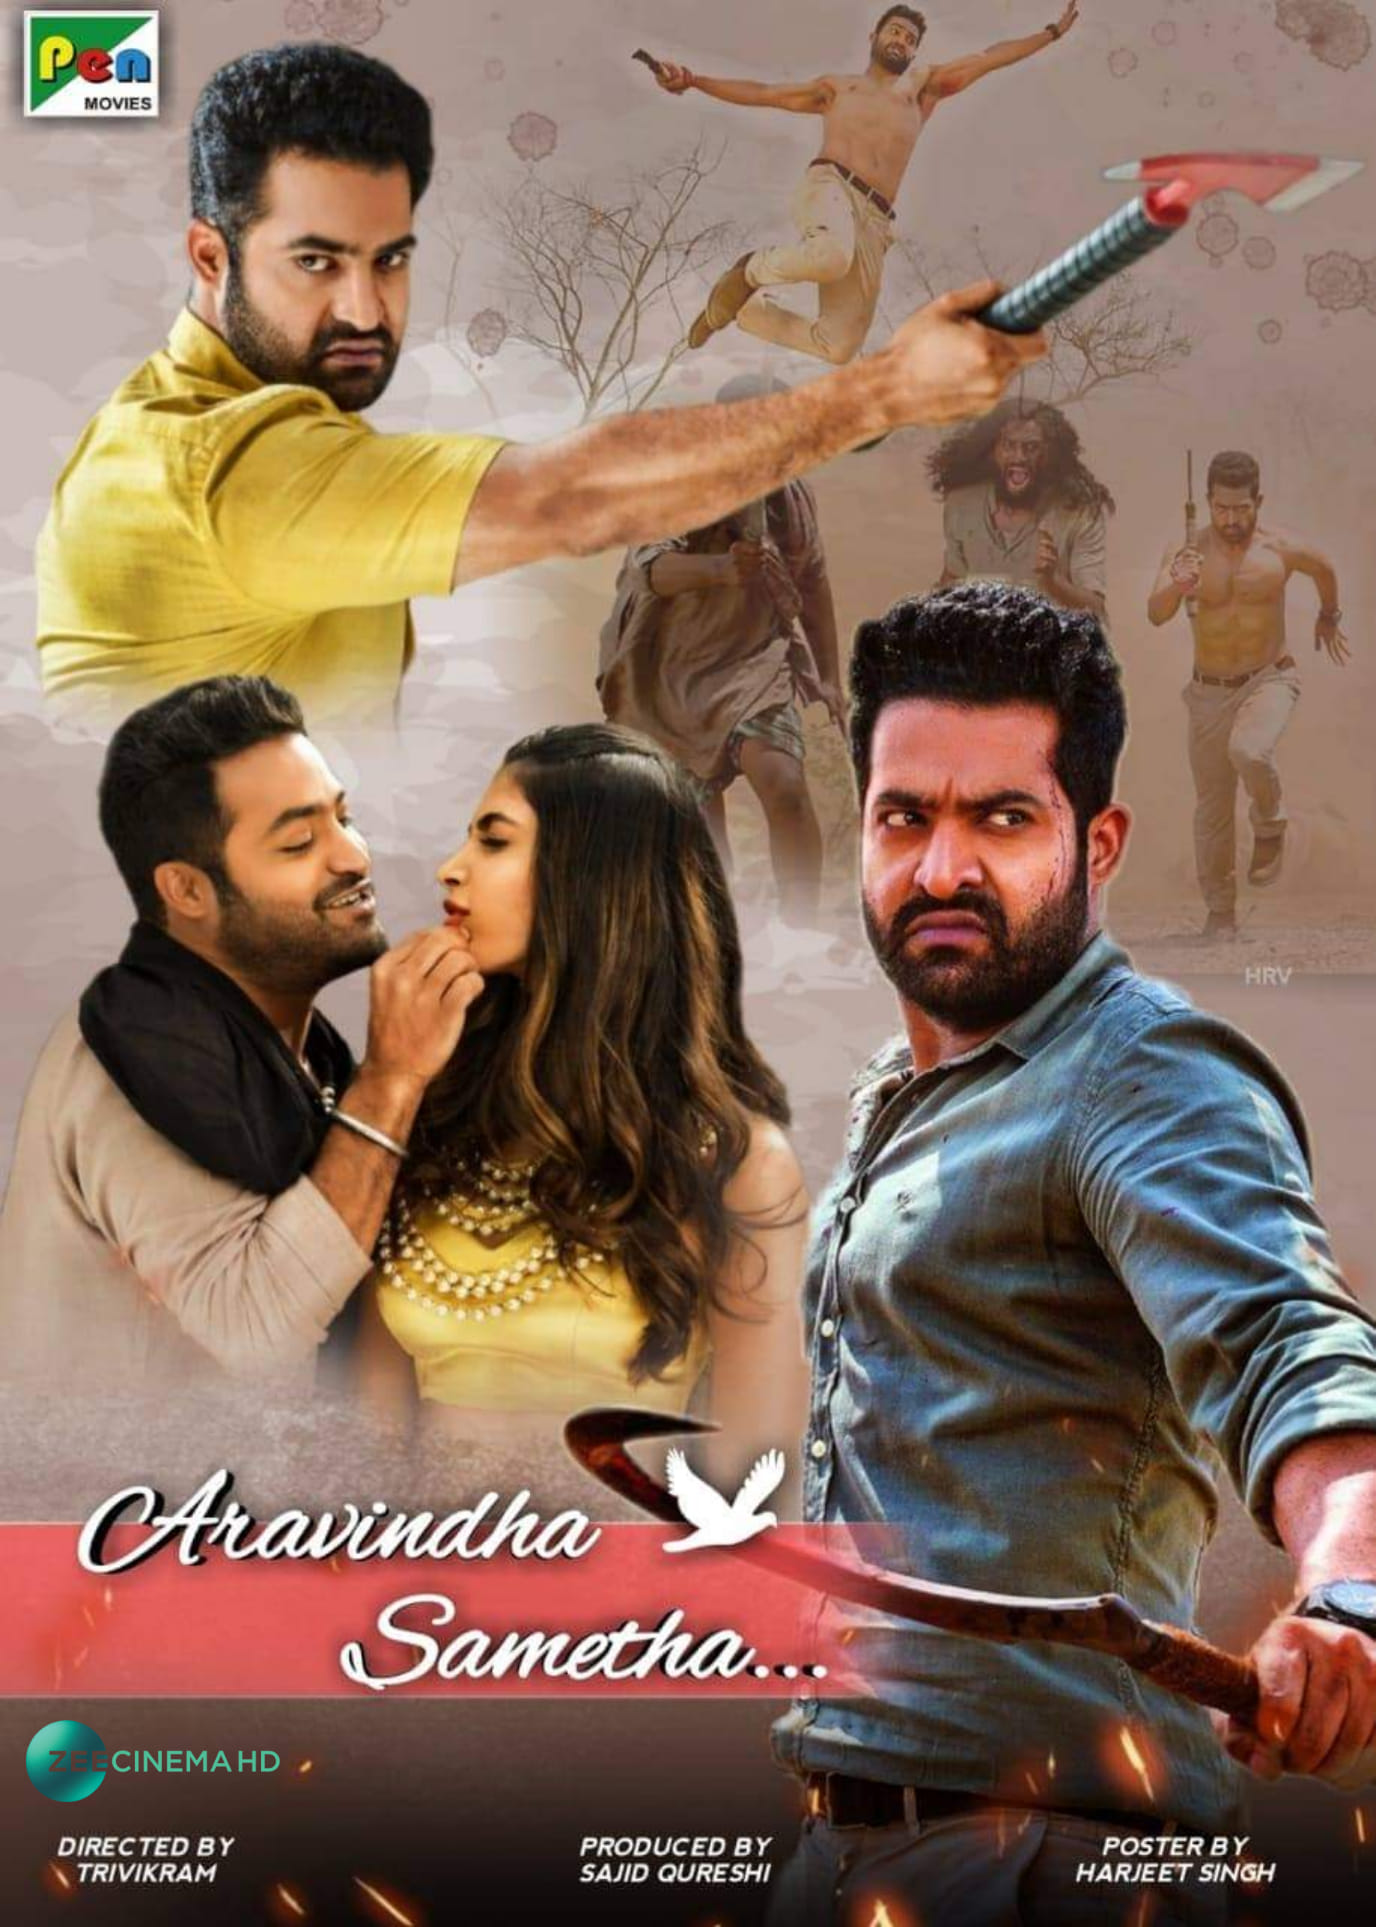 Aravinda Sametha Veera Raghava 2018 Hindi Dual Audio 720p UNCUT HDRip 1.6GB x264 AAC